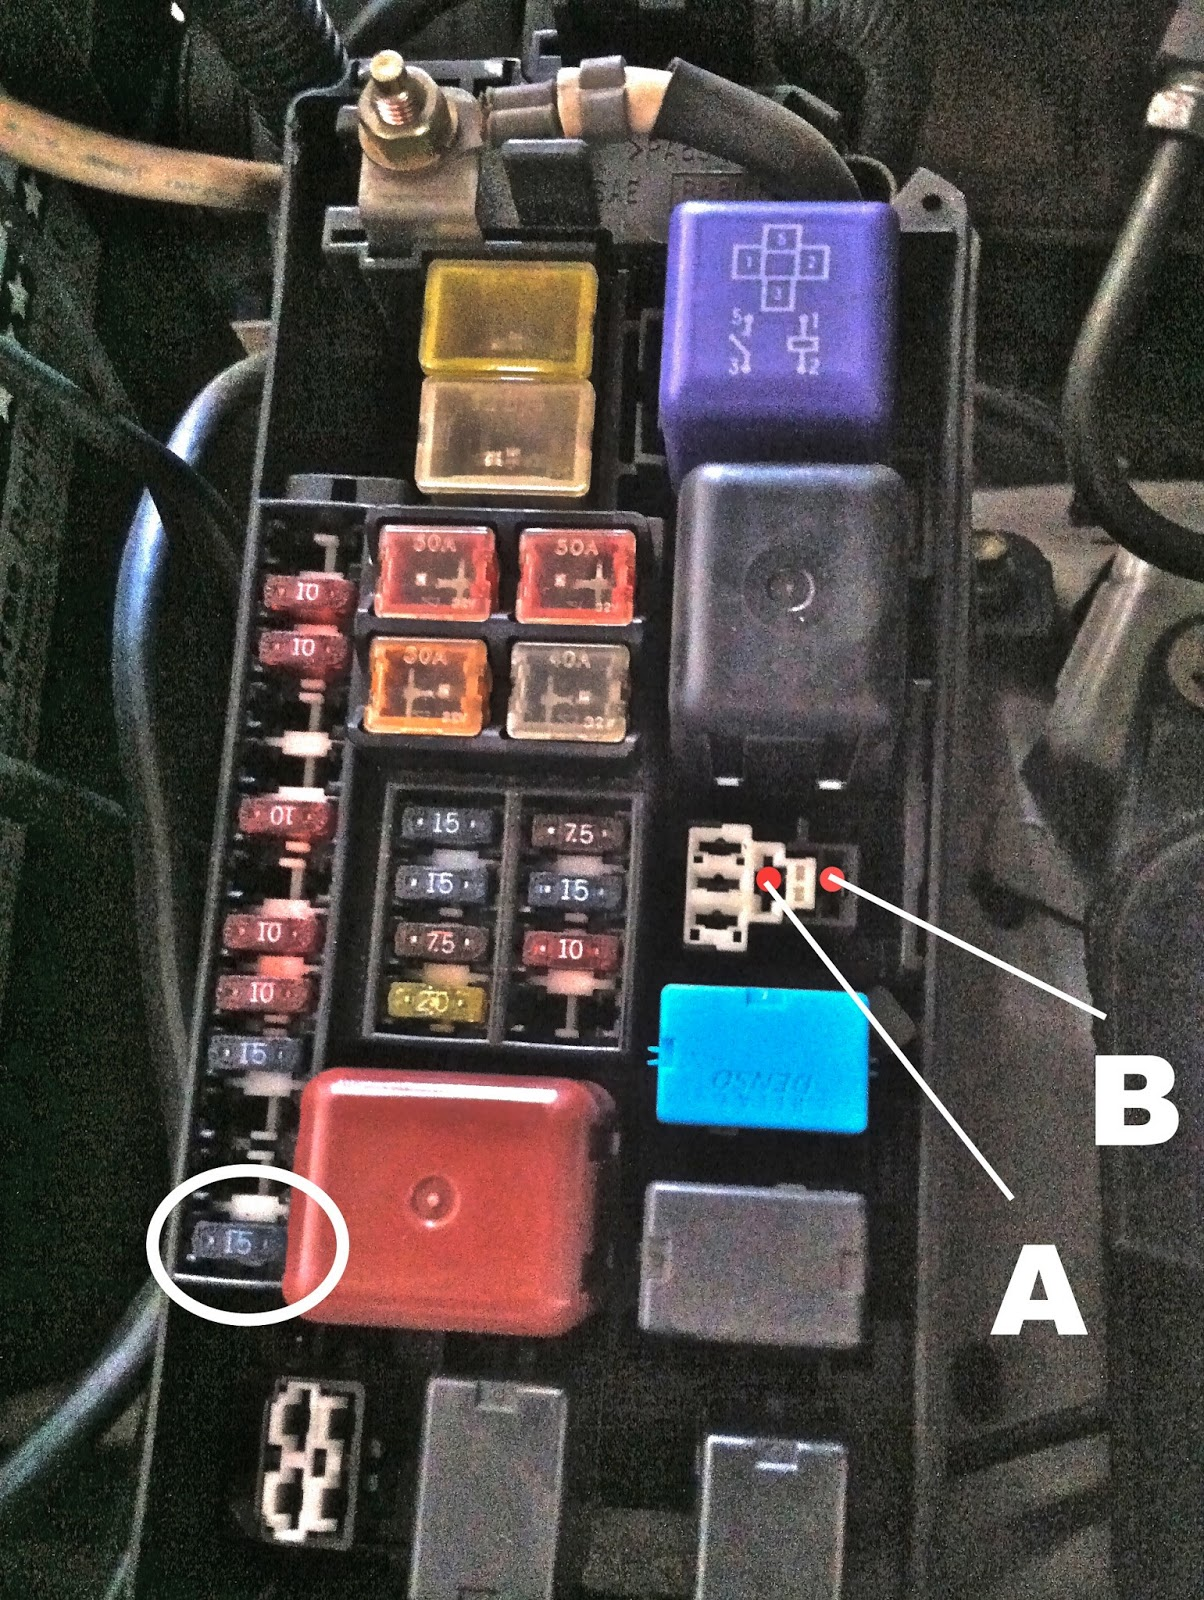 Toyota Camry Aftermarket Fog Light Wiring Diagram furthermore 8 Pin Relay Wiring Diagram together with Jeep P Tail Light Wiring Harness likewise 2001 Toyota Tundra Ignition Wiring Diagram besides Toyota Ta A Trailer Hitch Wiring Harness Engine. on toyota ta a fog light switch wiring diagram